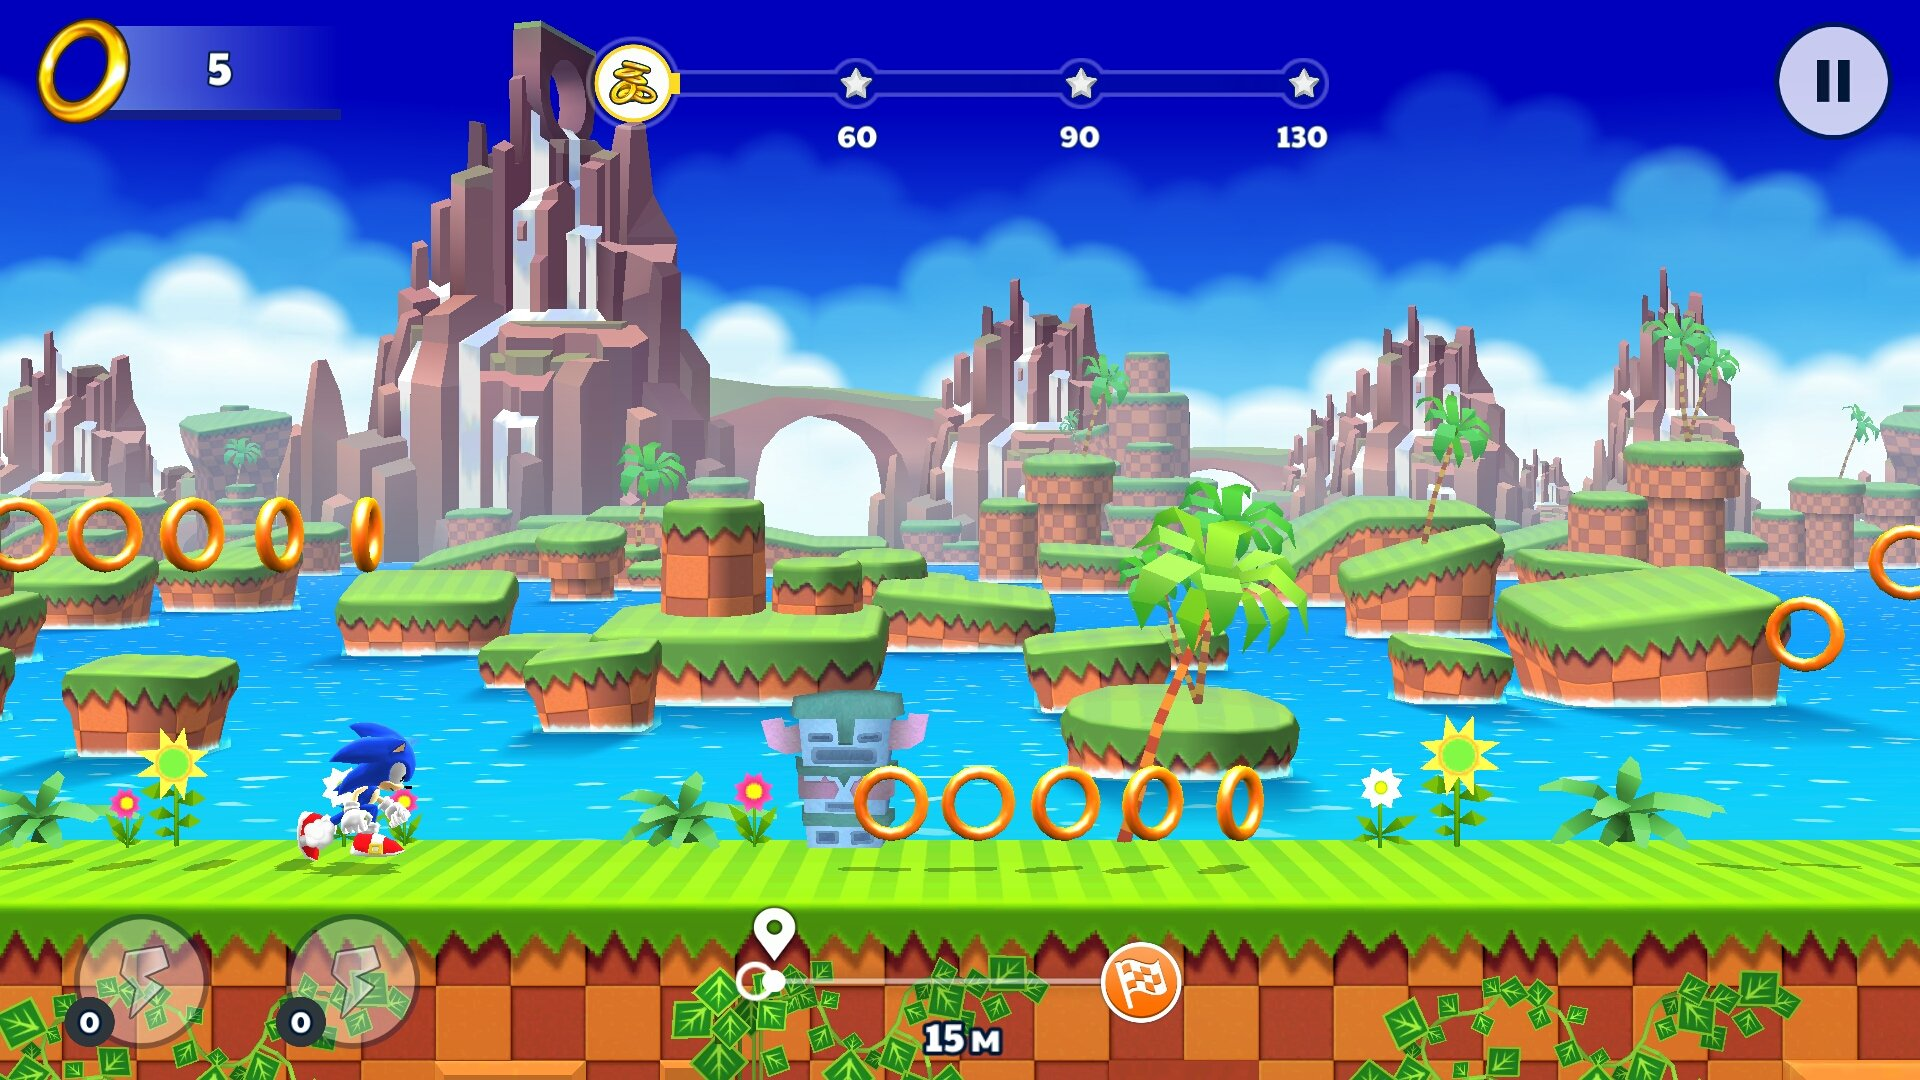 Sonic Runners Adventure - Android games - Download free